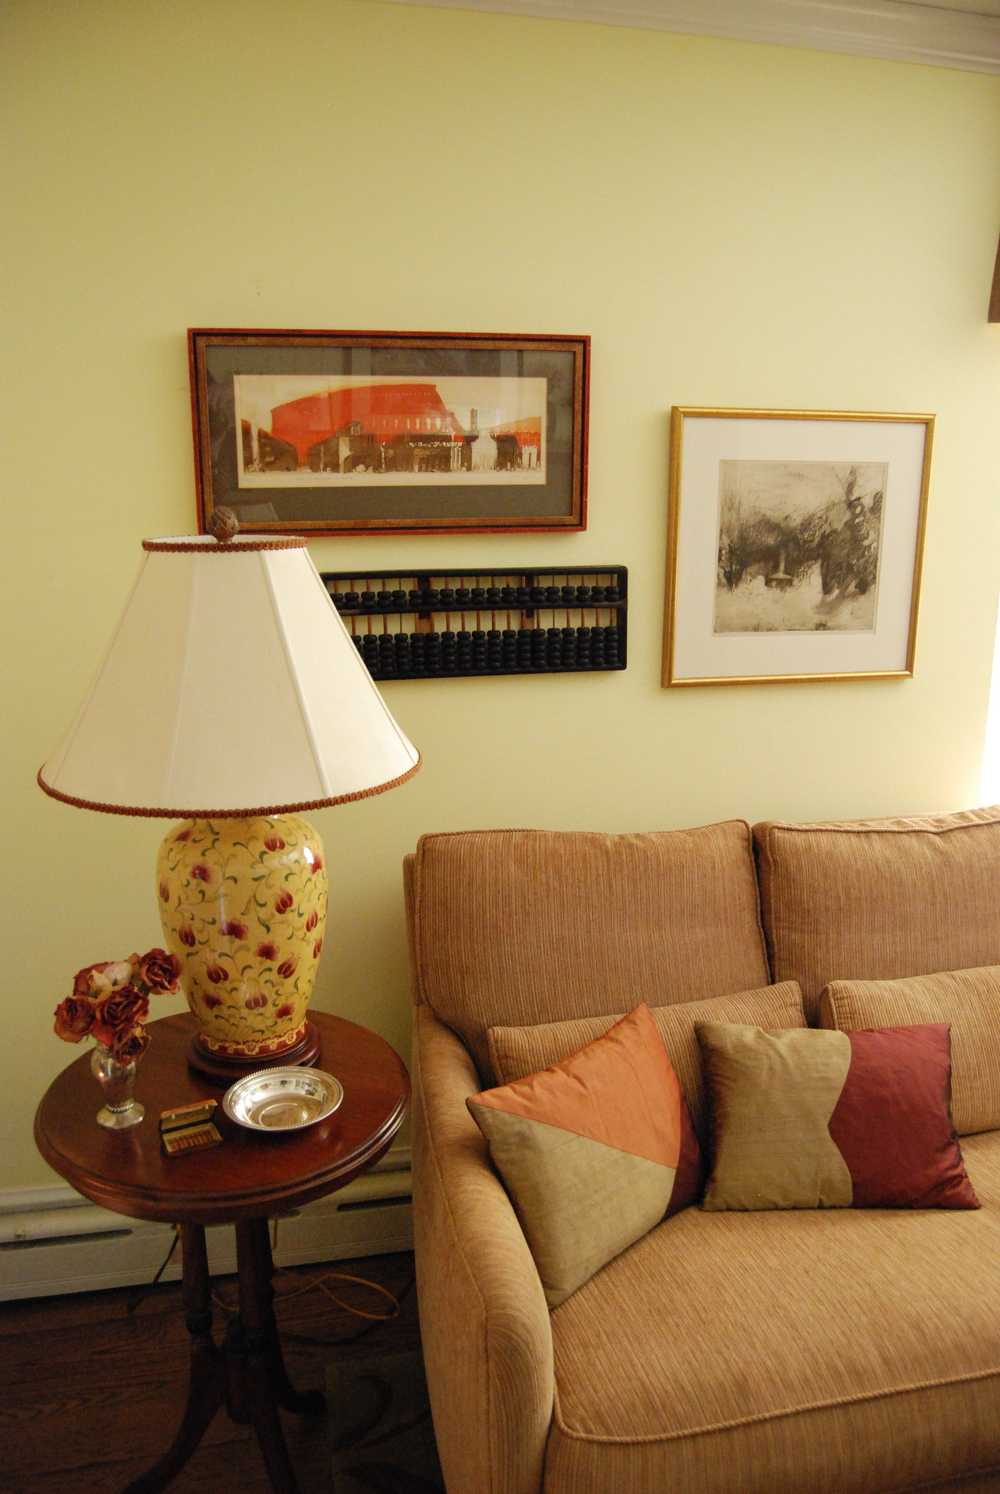 These custom pillows provide a rich complement to the variety of pieces on the wall, intensifying their impact.